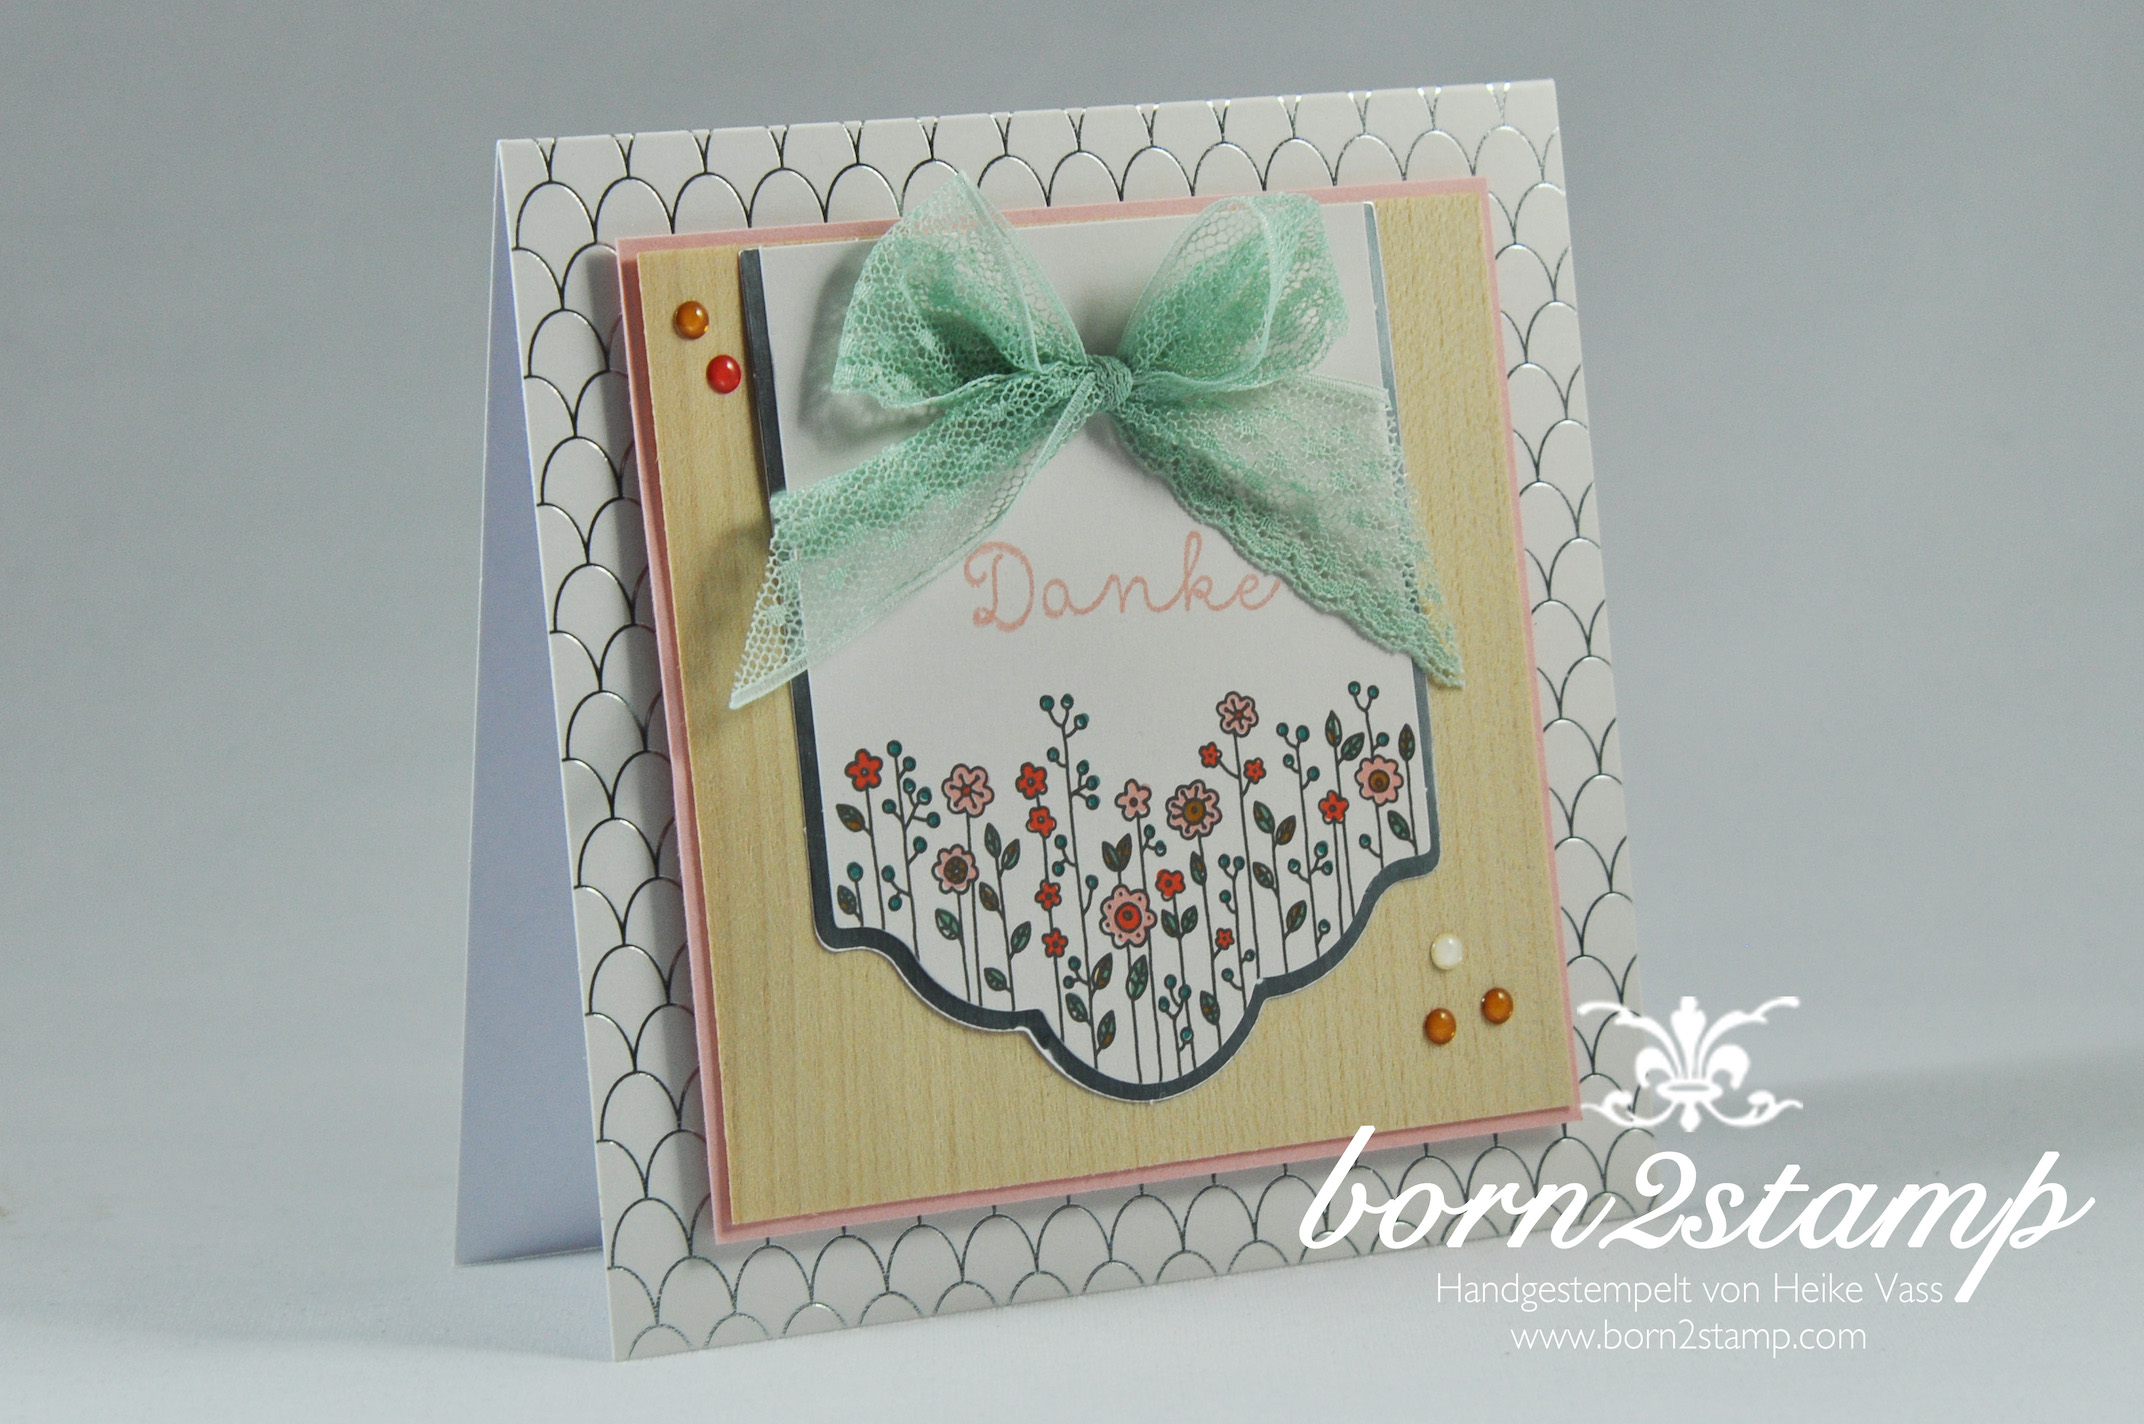 STAMPIN' UP! born2stamp Kartenset Landlust – Cottage greetings card kit